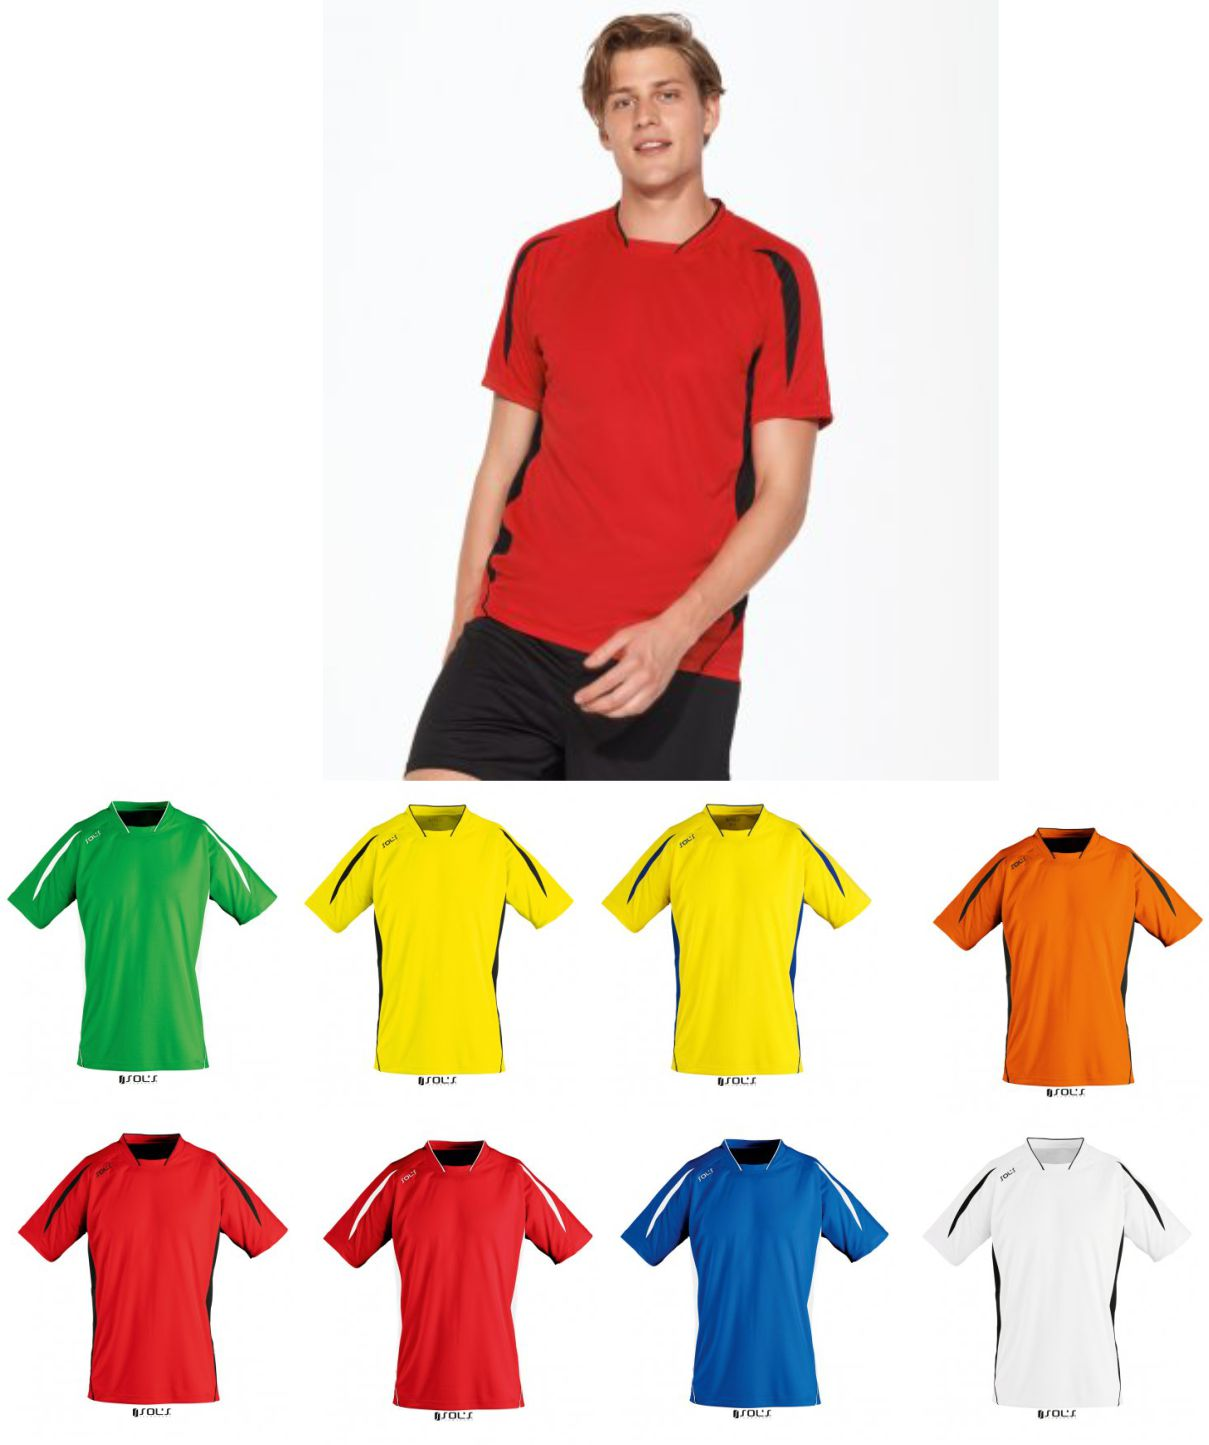 Sol's 01638 Maracana 2 Short Sleeve Shirt